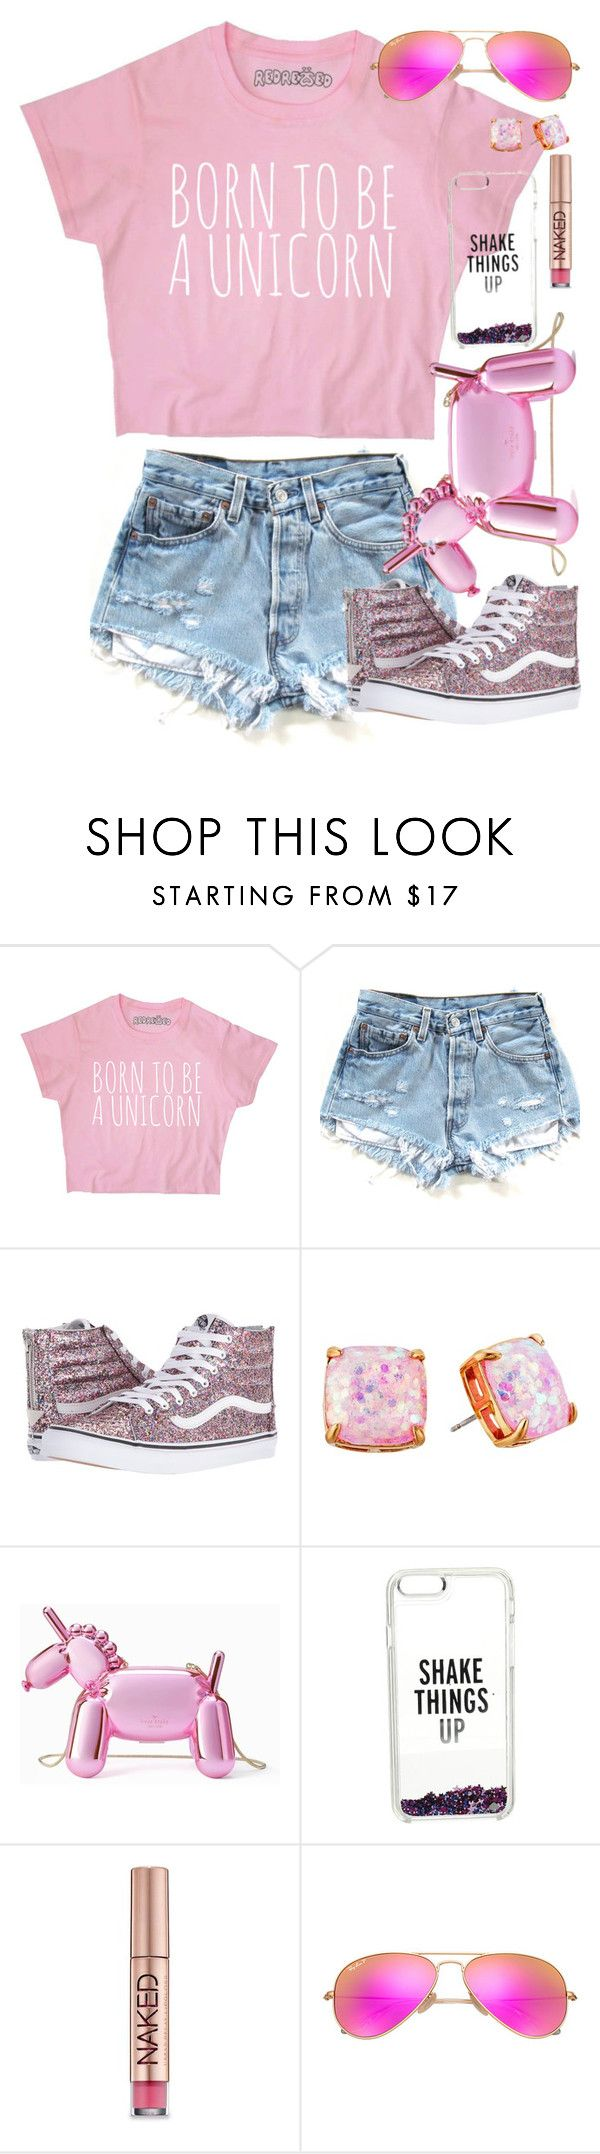 """unicorn"" by mcc782002 ❤ liked on Polyvore featuring Vans, Kate Spade, Urban Decay and Ray-Ban"